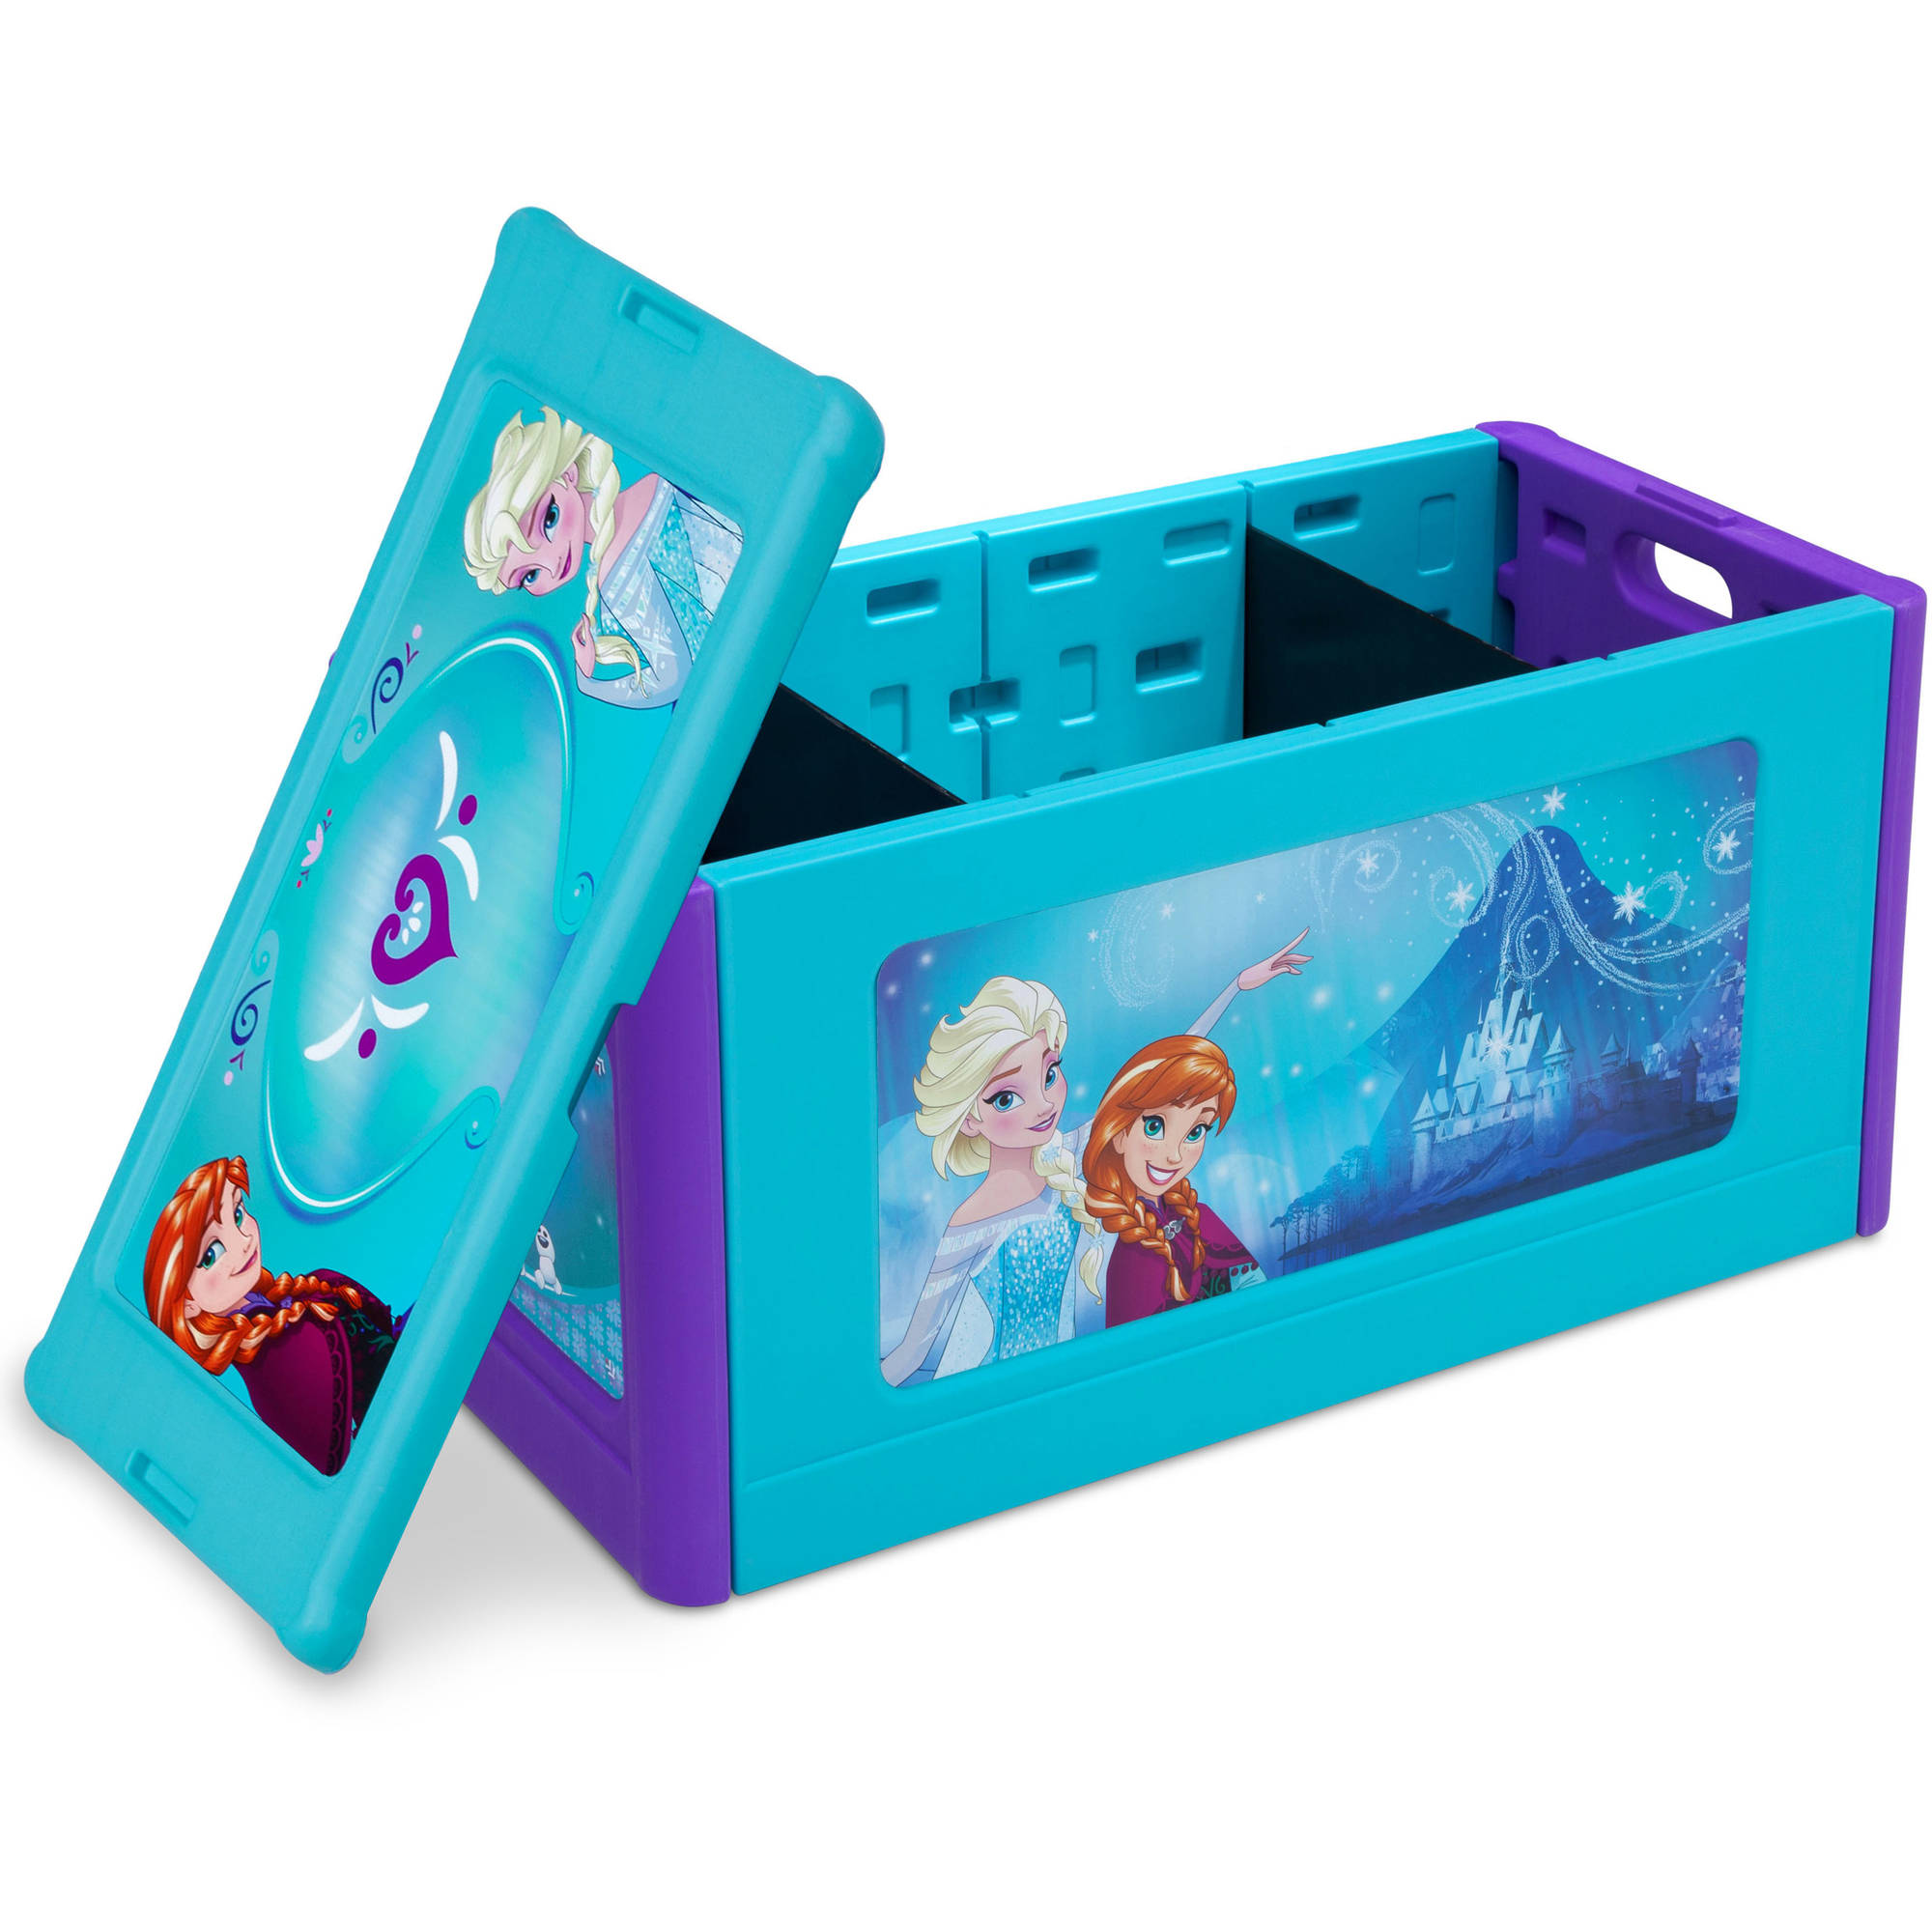 Disney Frozen Store and Organize Toy Box